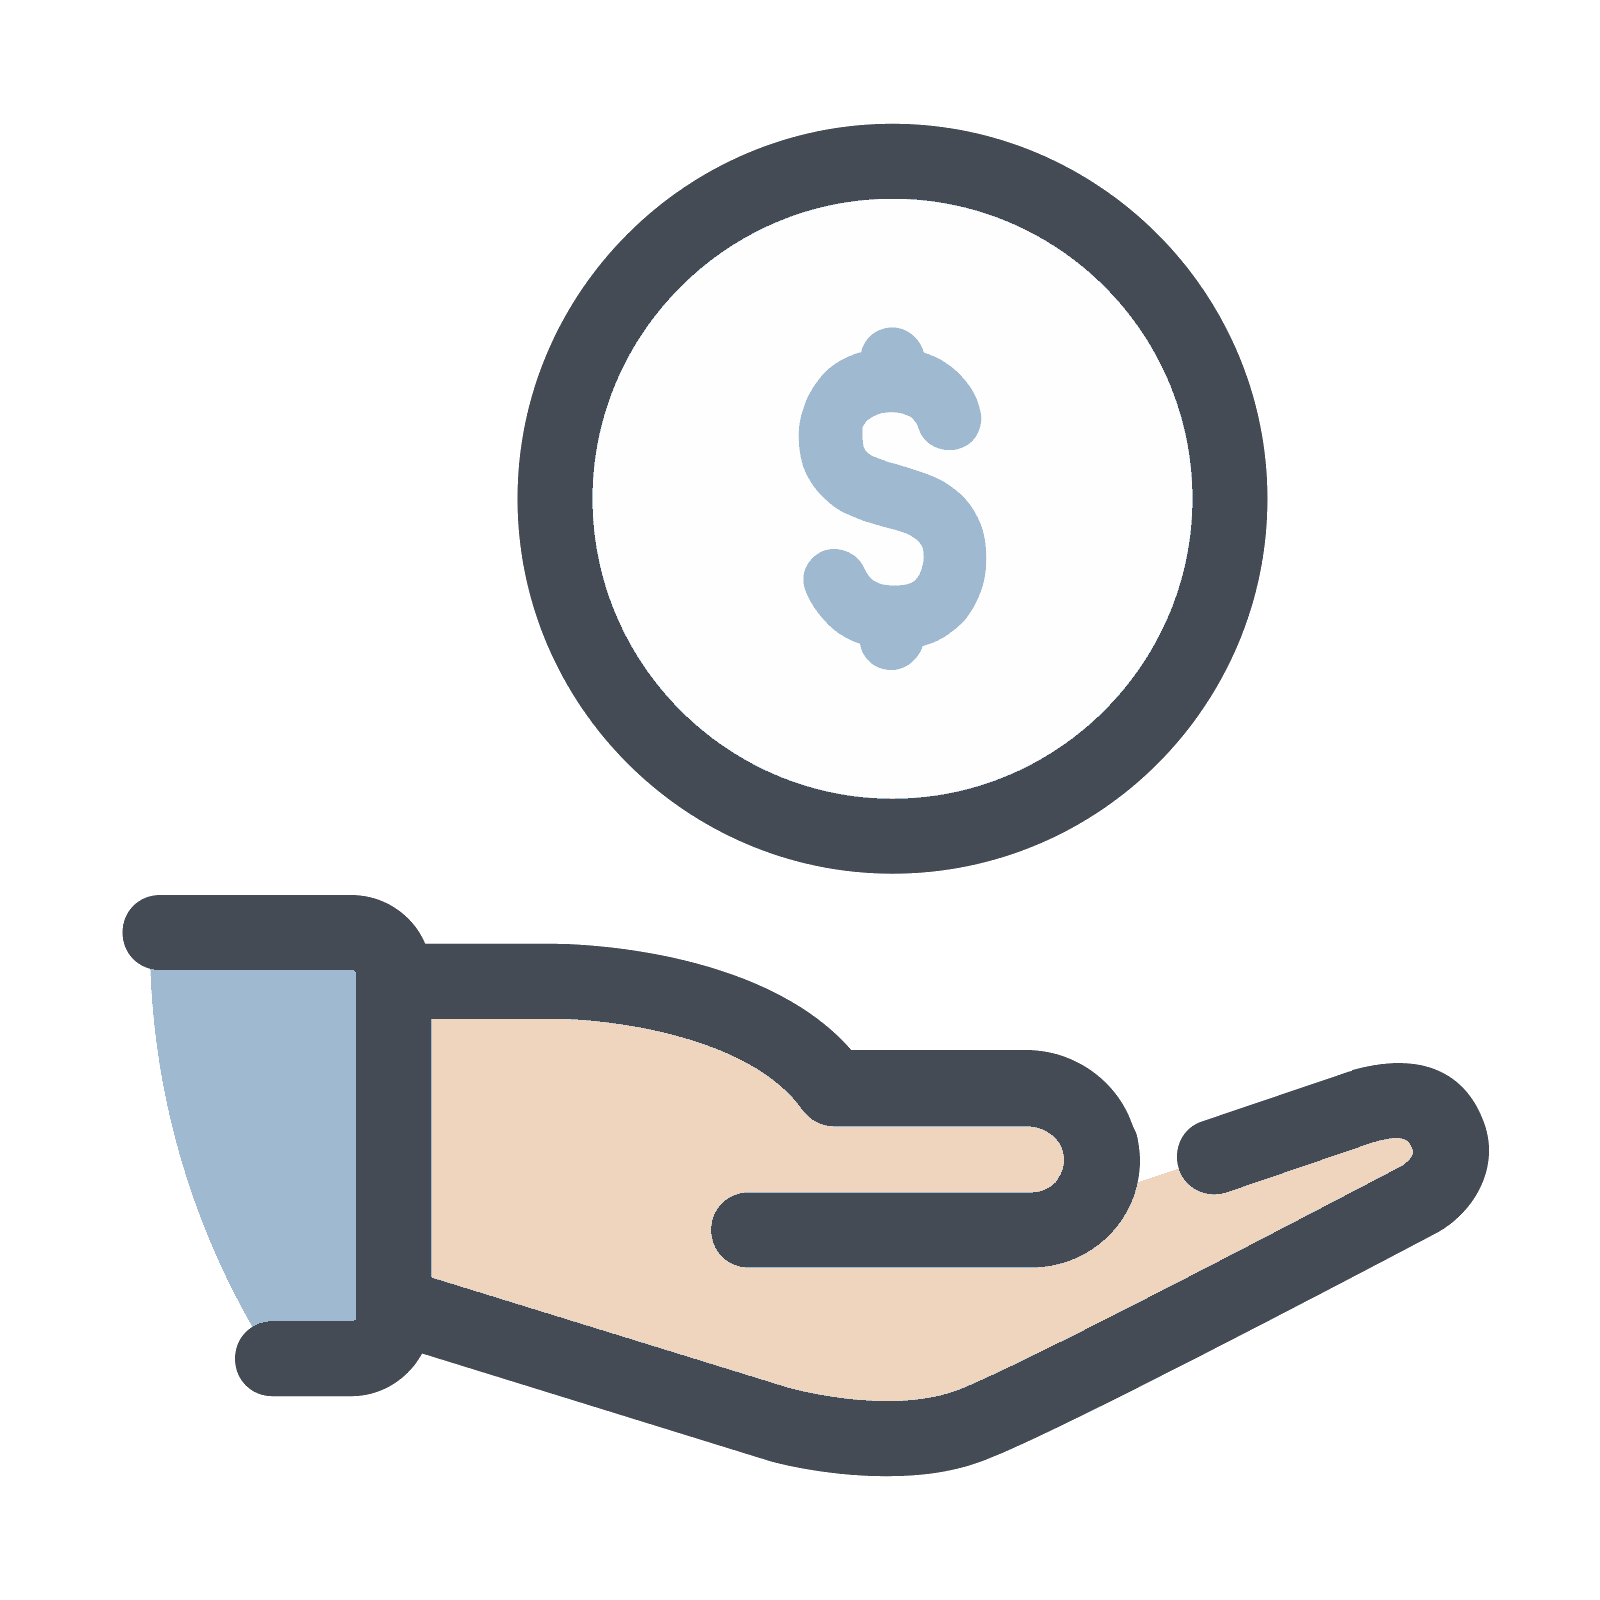 Save money icon png. Get cash free download